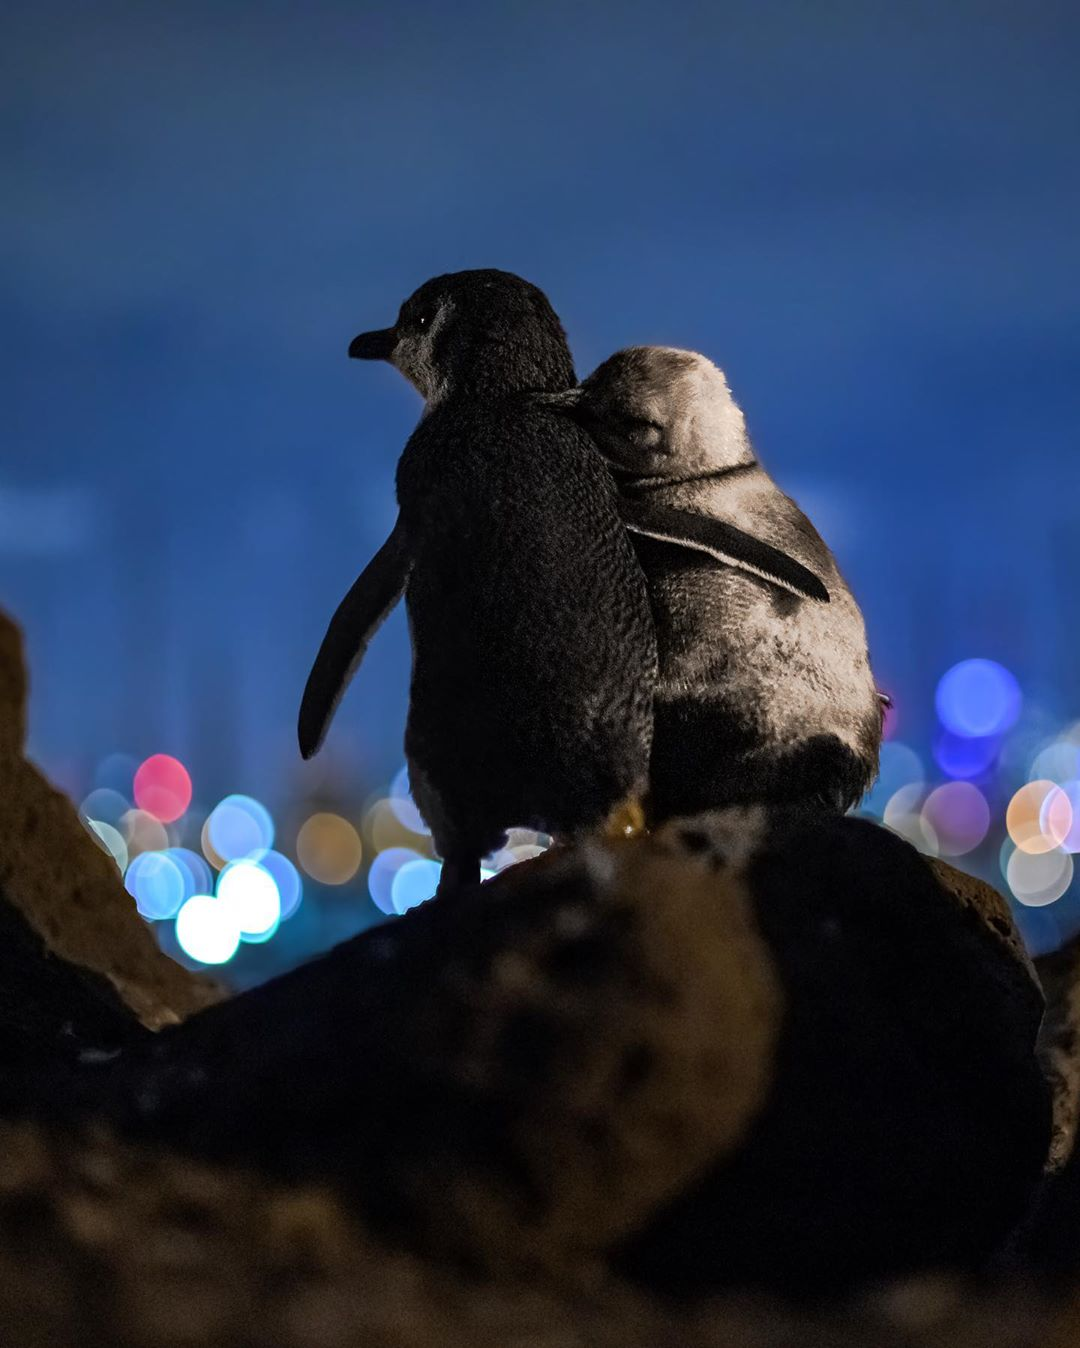 Two Penguins Embracing in Melbourne